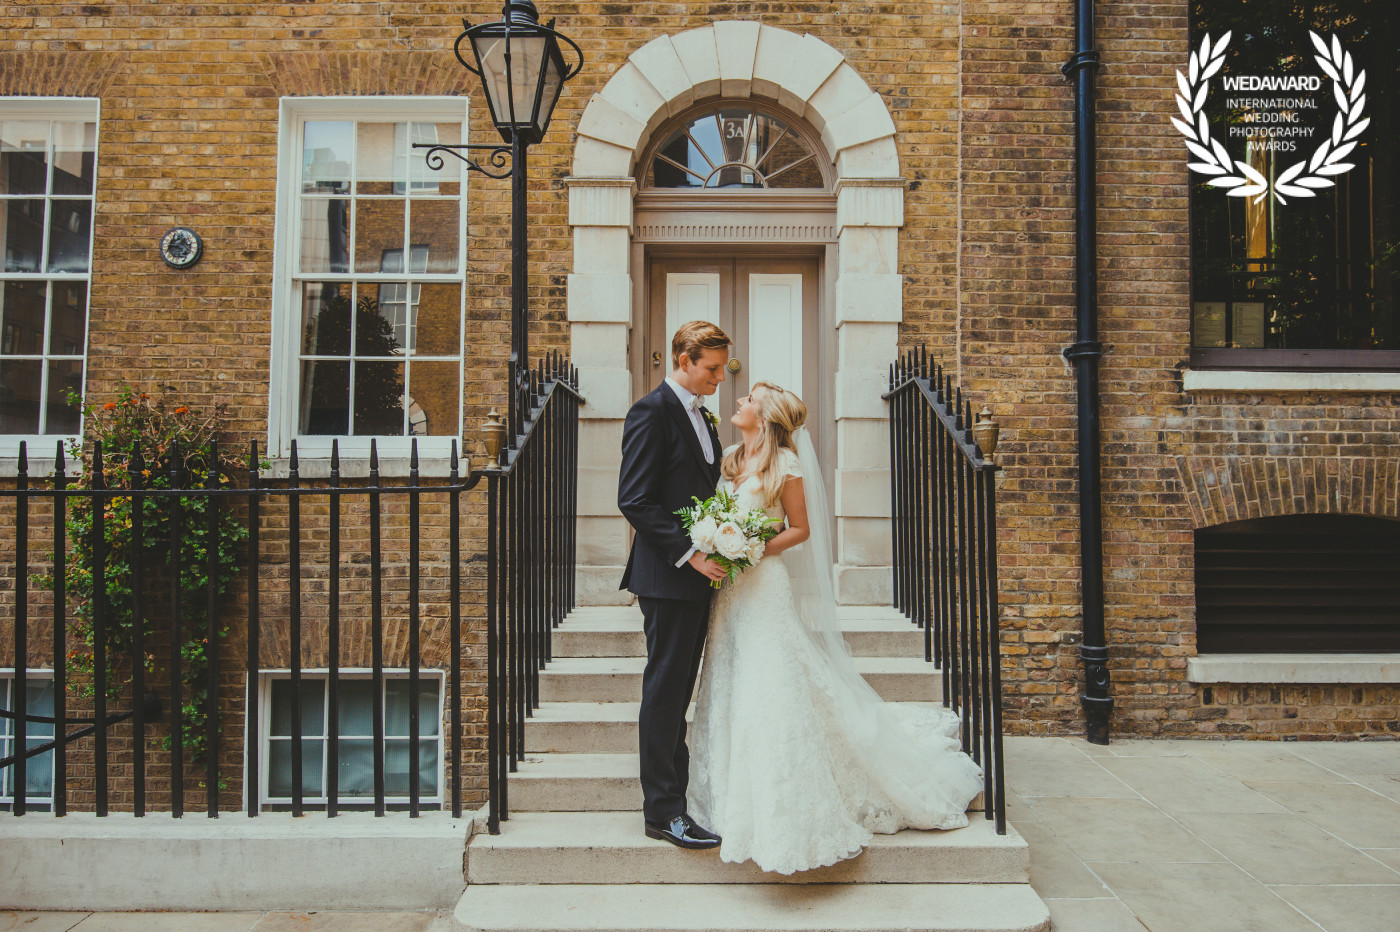 Wedding Photography Awards Collection 26 From The Top